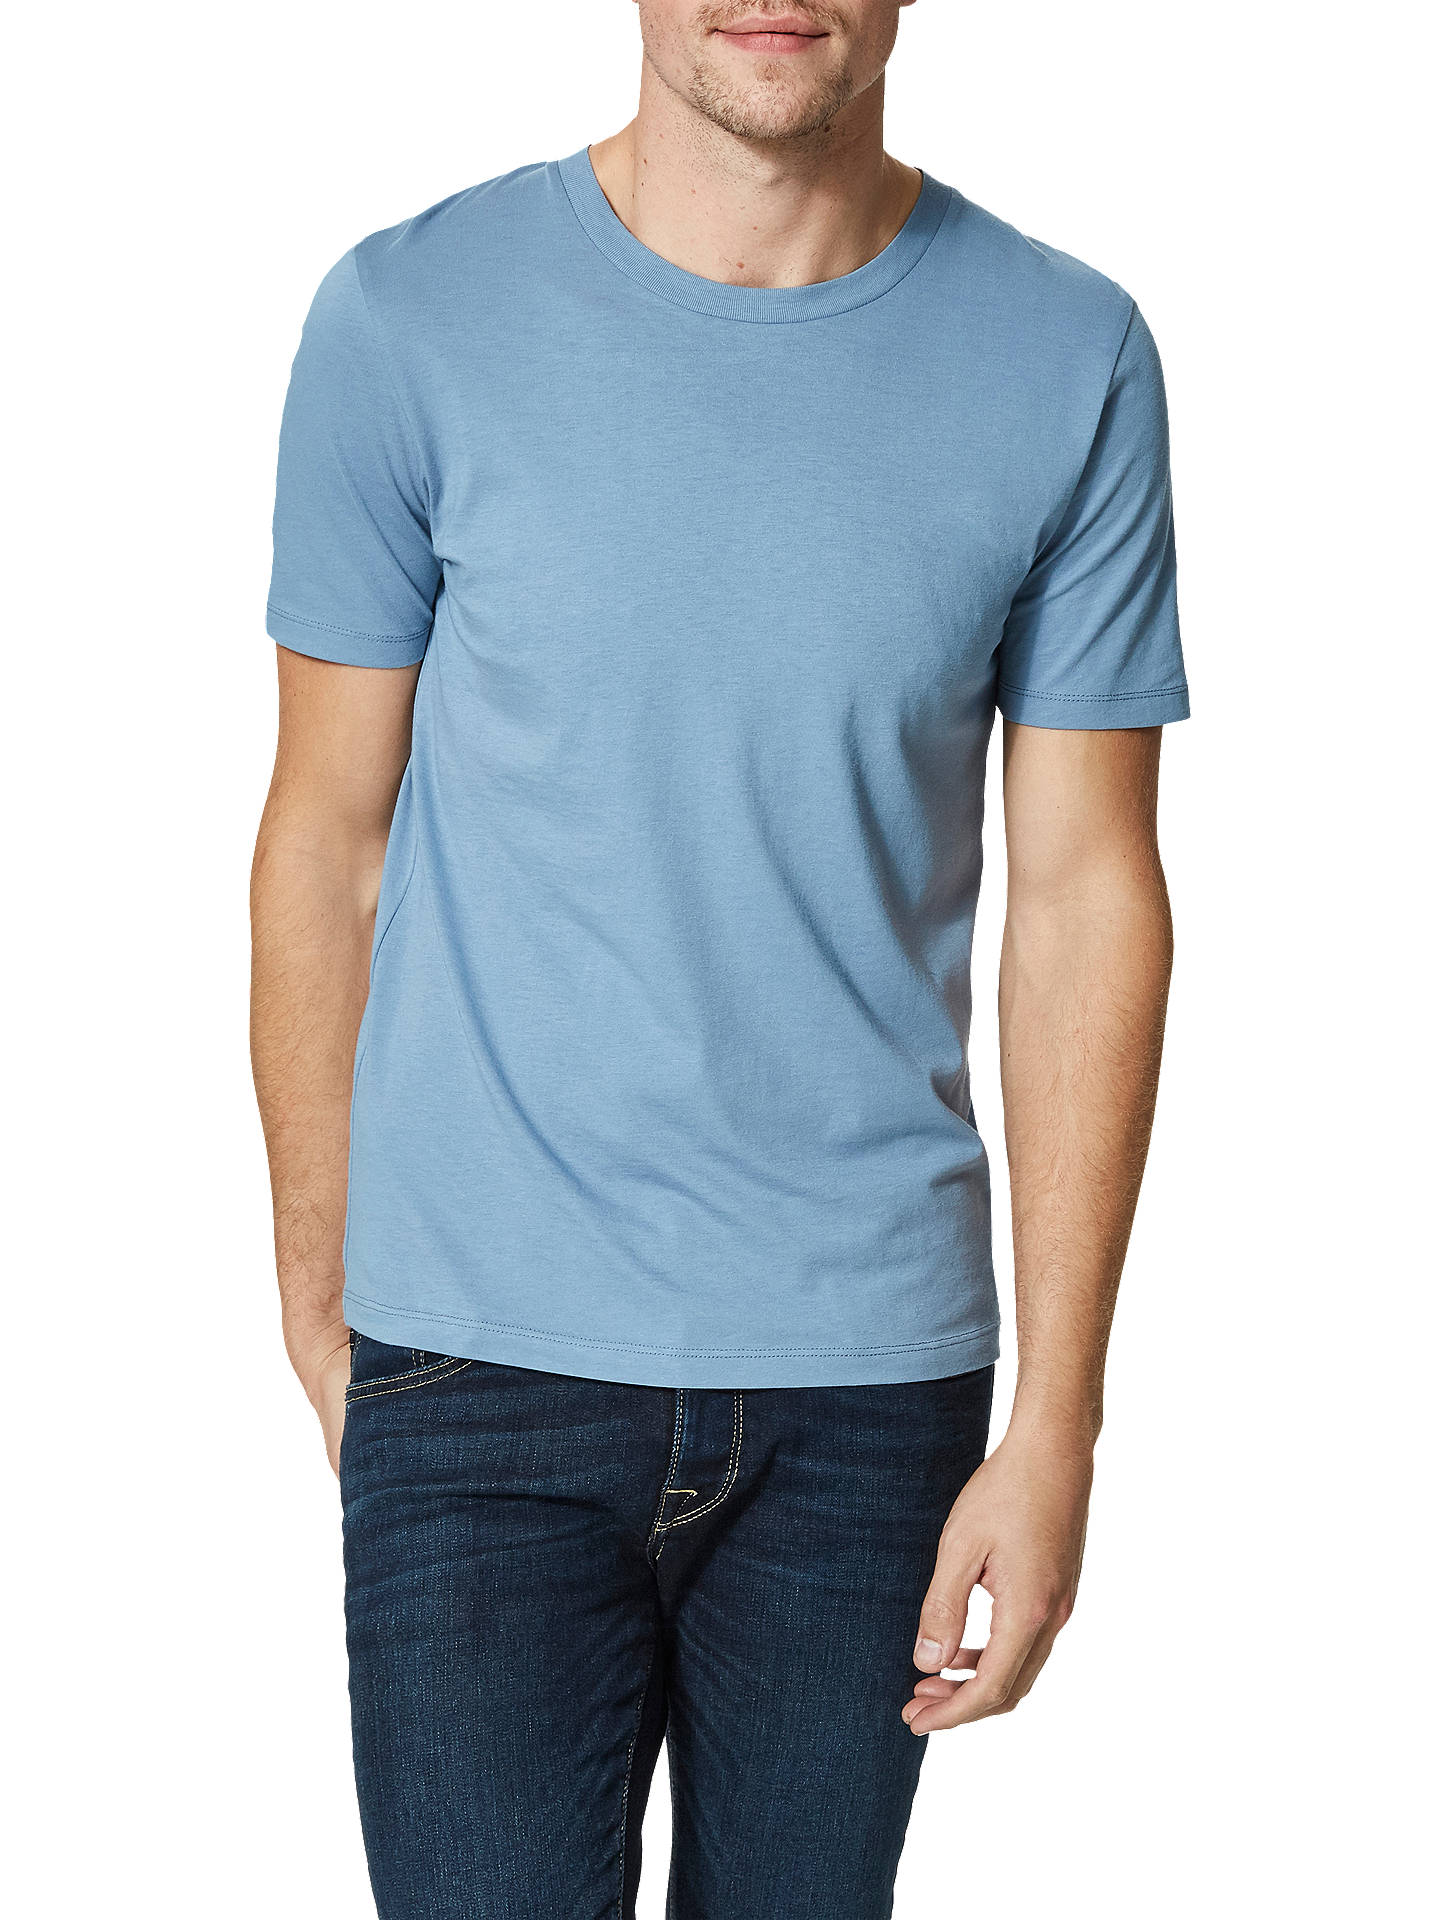 ddd43a0f3706 Buy Selected Homme 'The Perfect Tee' Pima Cotton T-Shirt, Blue Shadow ...